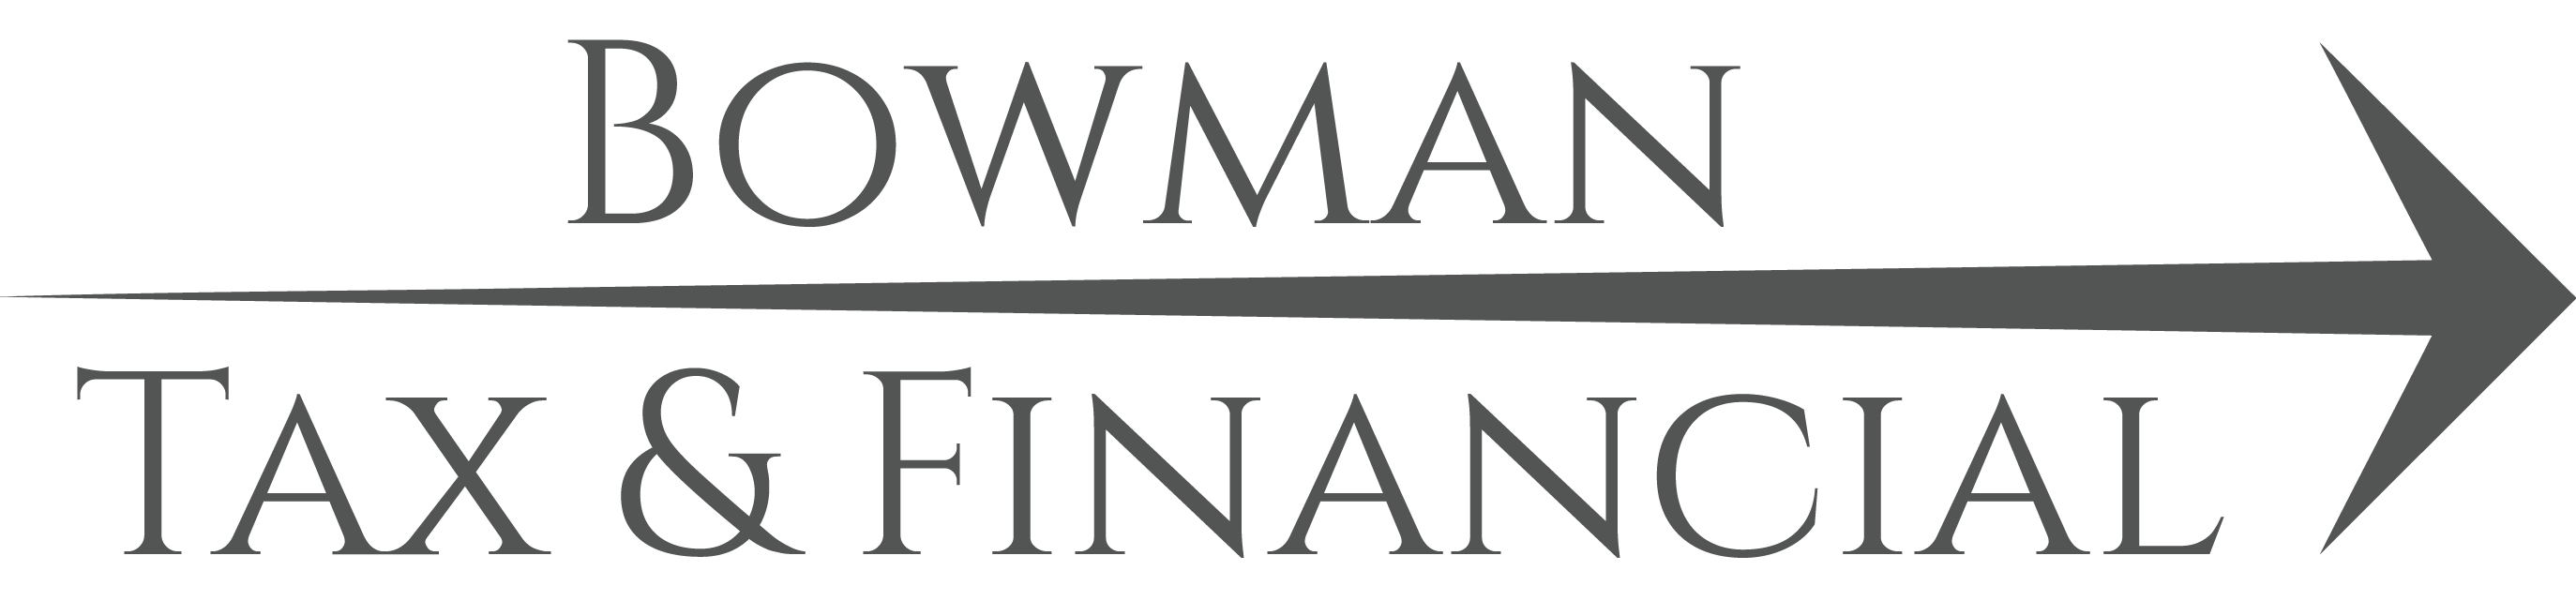 Bowman Tax & Financial - Black Owned